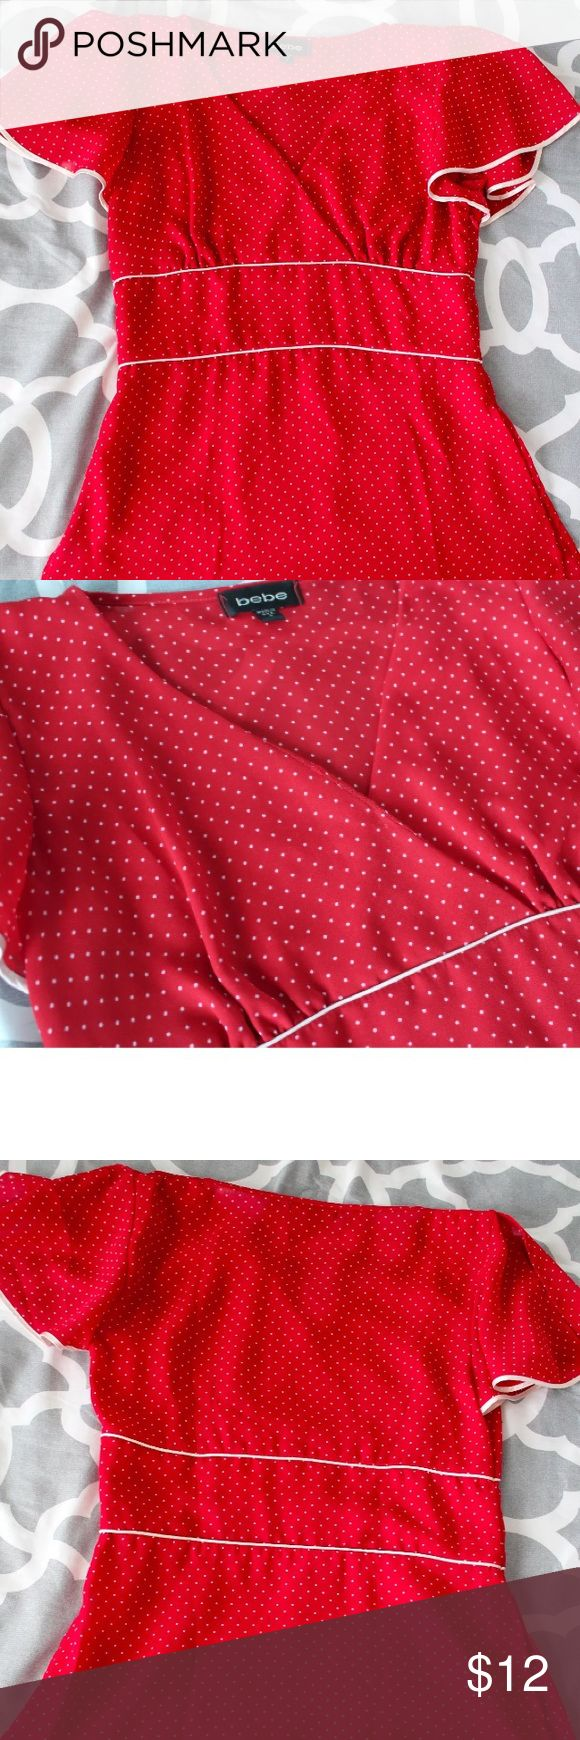 """Bebe Retro Style polka dot Crossover Top is beautiful top is in excellent preowned condition. It is a size small but has been altered. It measures 16"""" across the chest and it is 24"""" long from shoulder to hem, making it fit more like a size xs. On the crossover part of the top there is a small pinhole. Please zoom in on pics. All of our items come from a smoke free home. bebe Tops Blouses"""